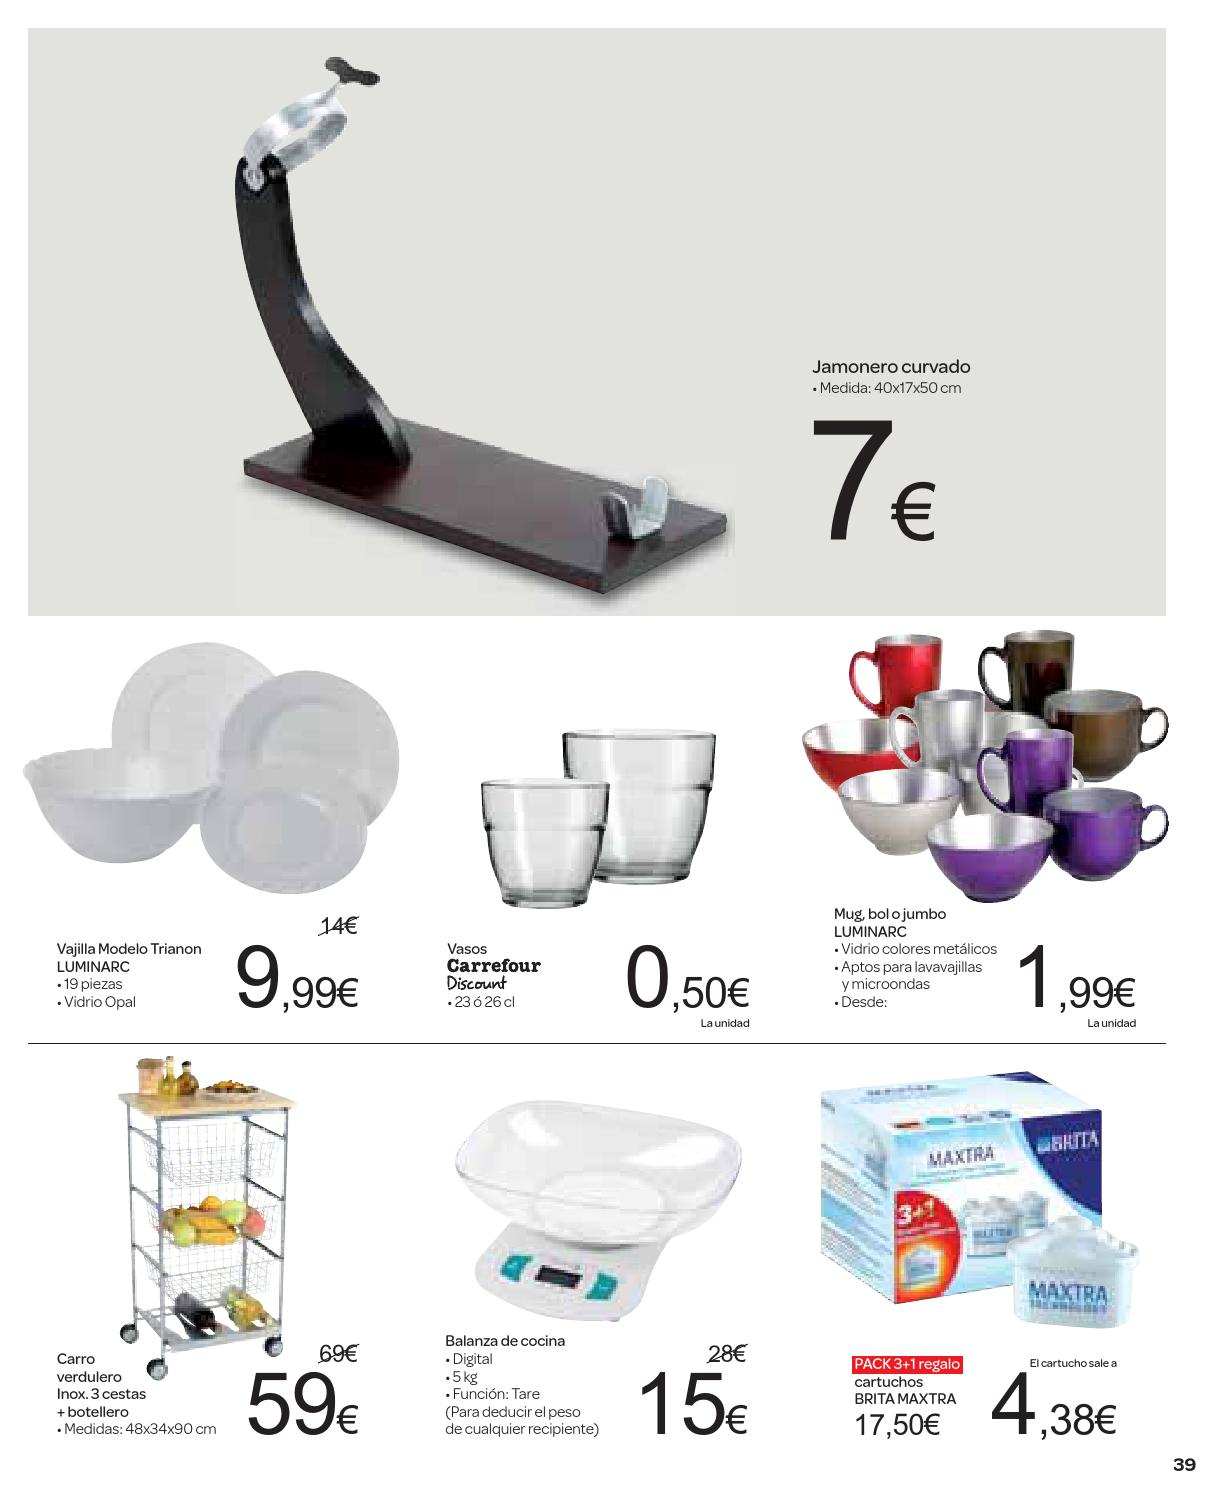 Balanza Cocina Carrefour Catalogo Carrefour 70 Descuento By Carrefour Online Issuu